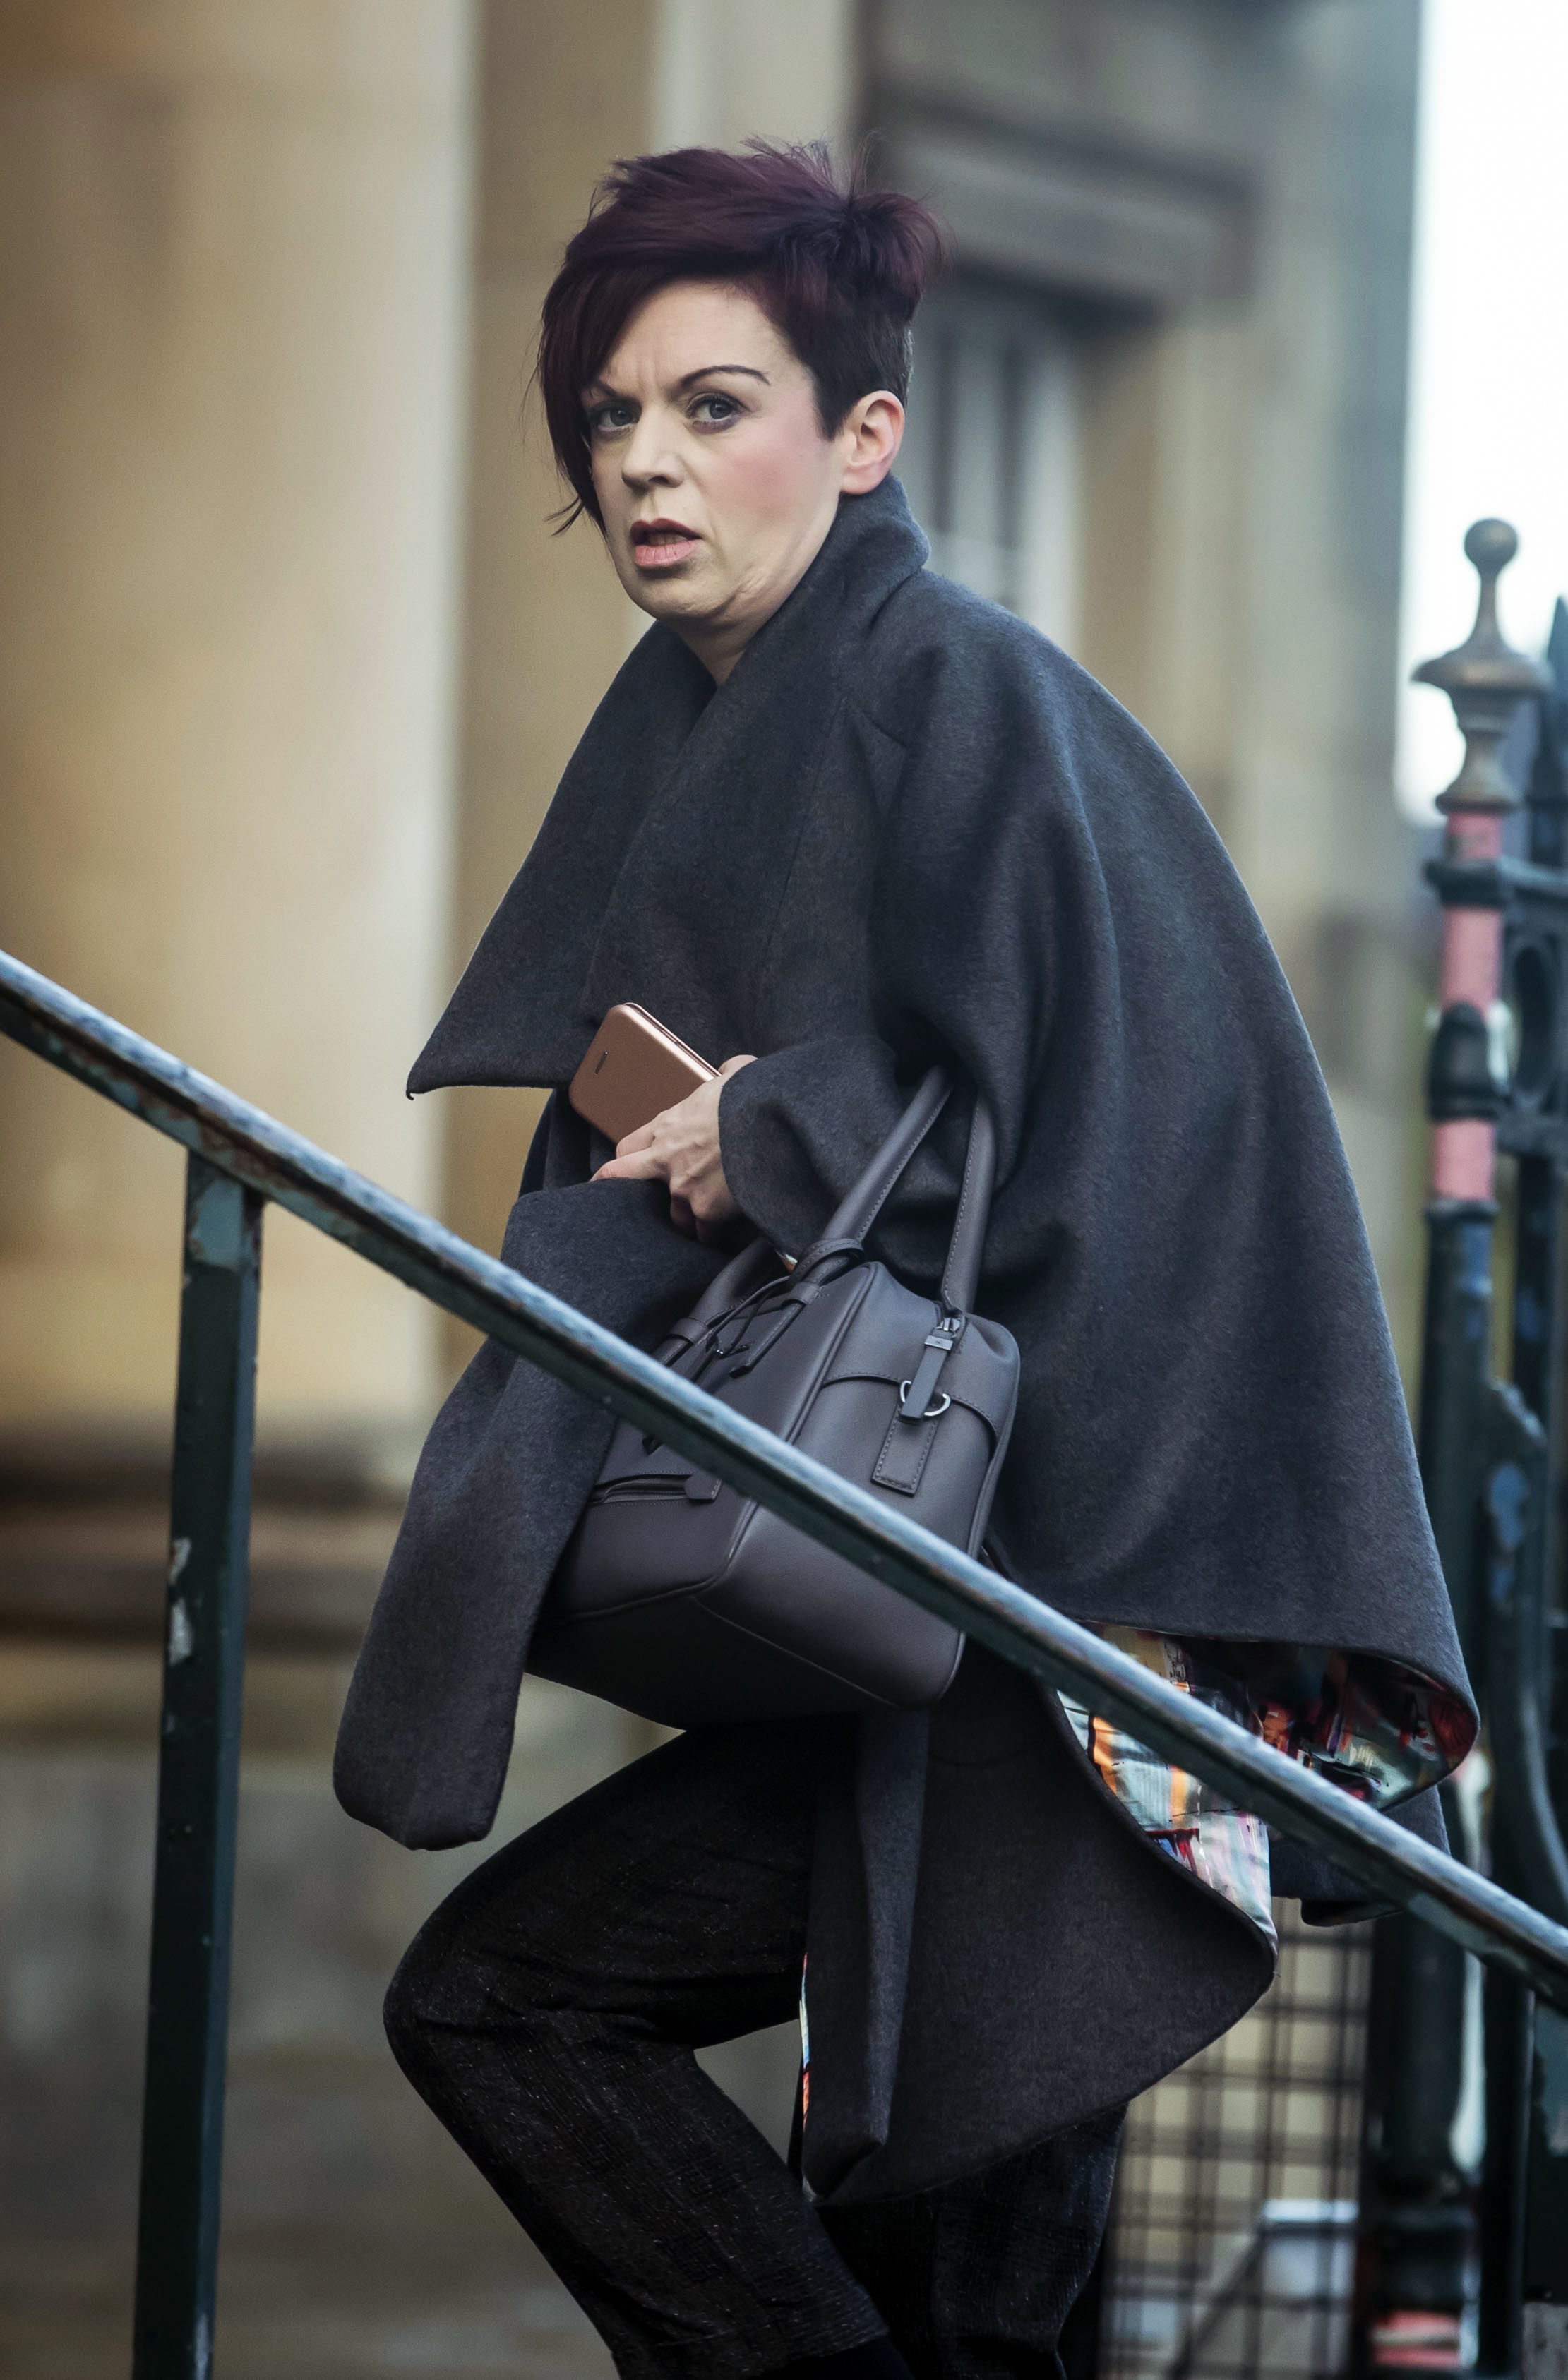 Patricia Robertshaw, who pretended to be ill, arrives at York Crown court ahead of pleading guilty to defrauding a cancer charity out of more than 90,000. PRESS ASSOCIATION Photo. Picture date: Wednesday January 9, 2019. Robertshaw, 42, who worked as a p